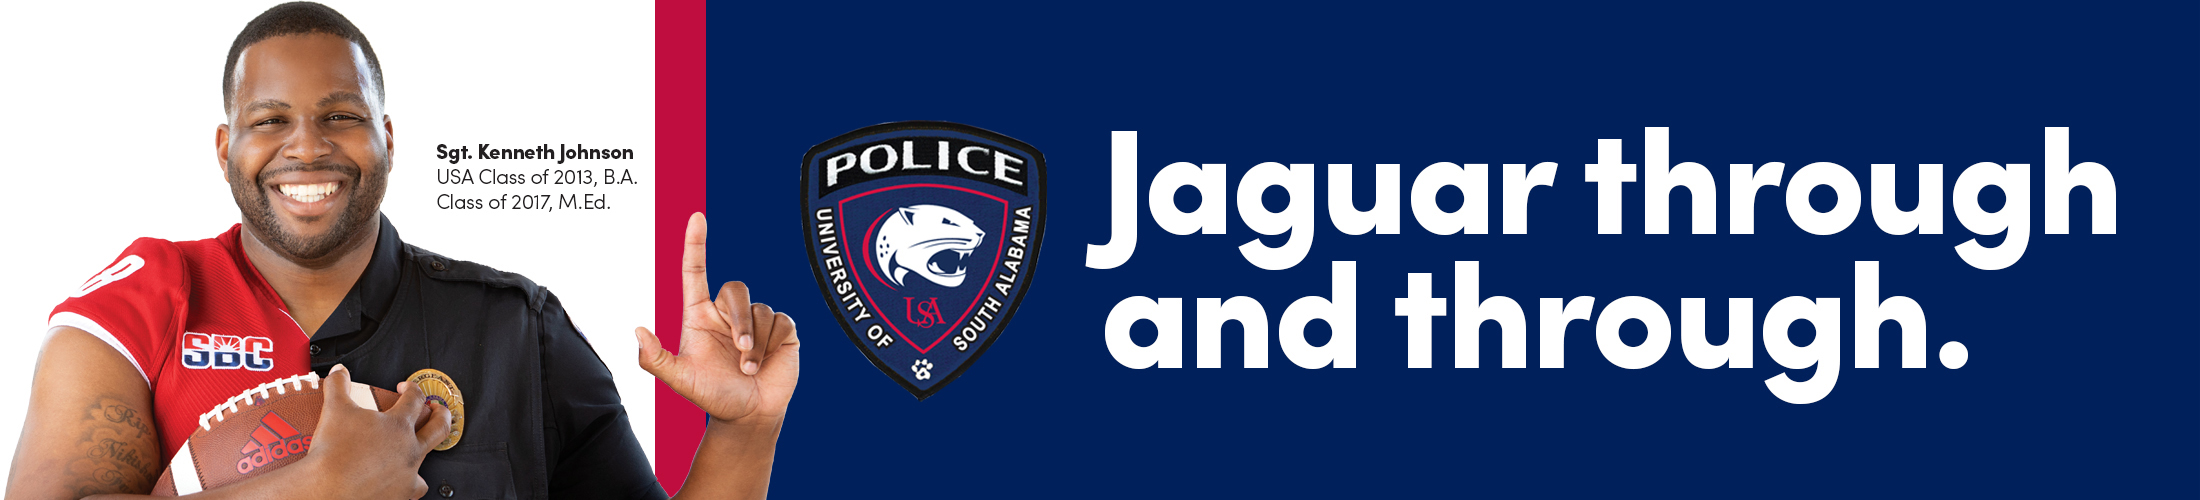 Officer Johnson with text Jaguar Through and through